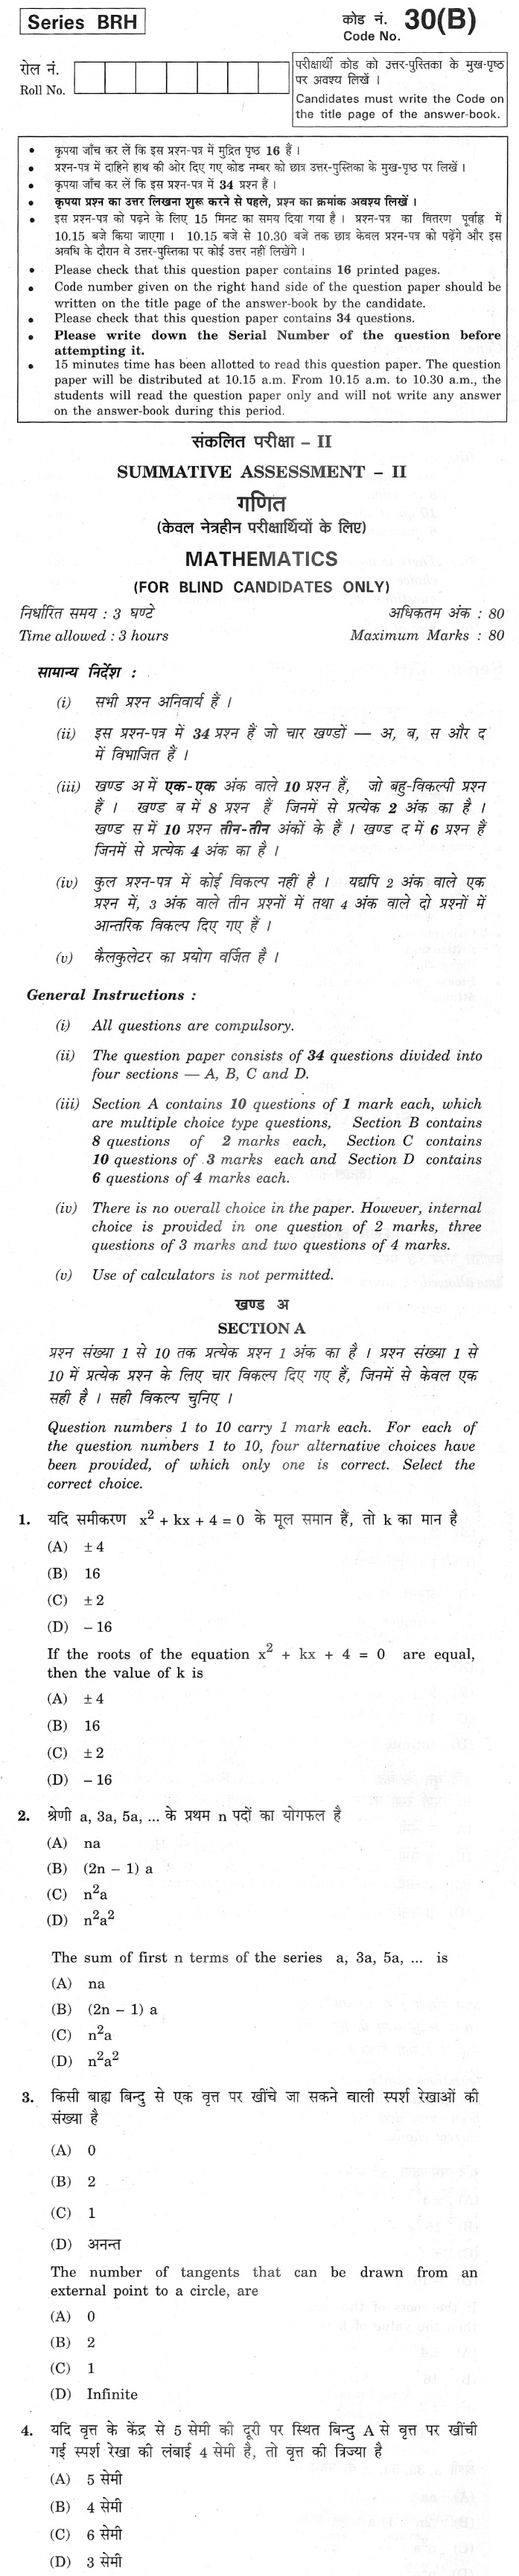 blindness essay questions On his blindness summary and essay save time on his blindness homework help questions i need an explanation of on his blindness.